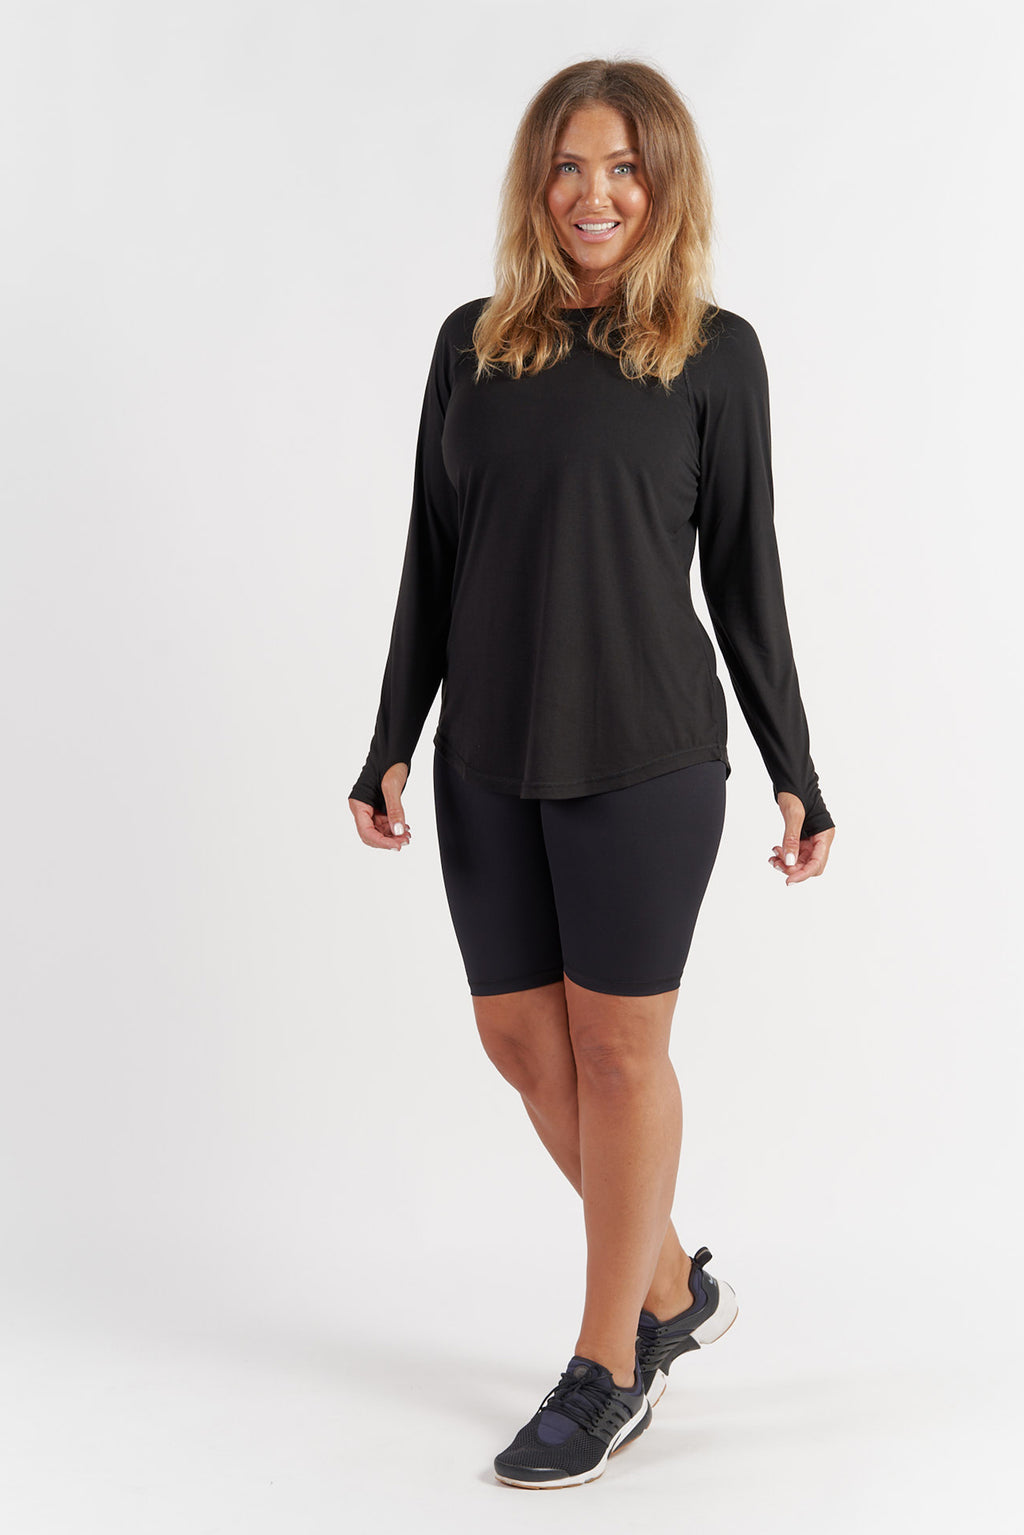 activewear-long-sleeve-performance-top-black-large-side